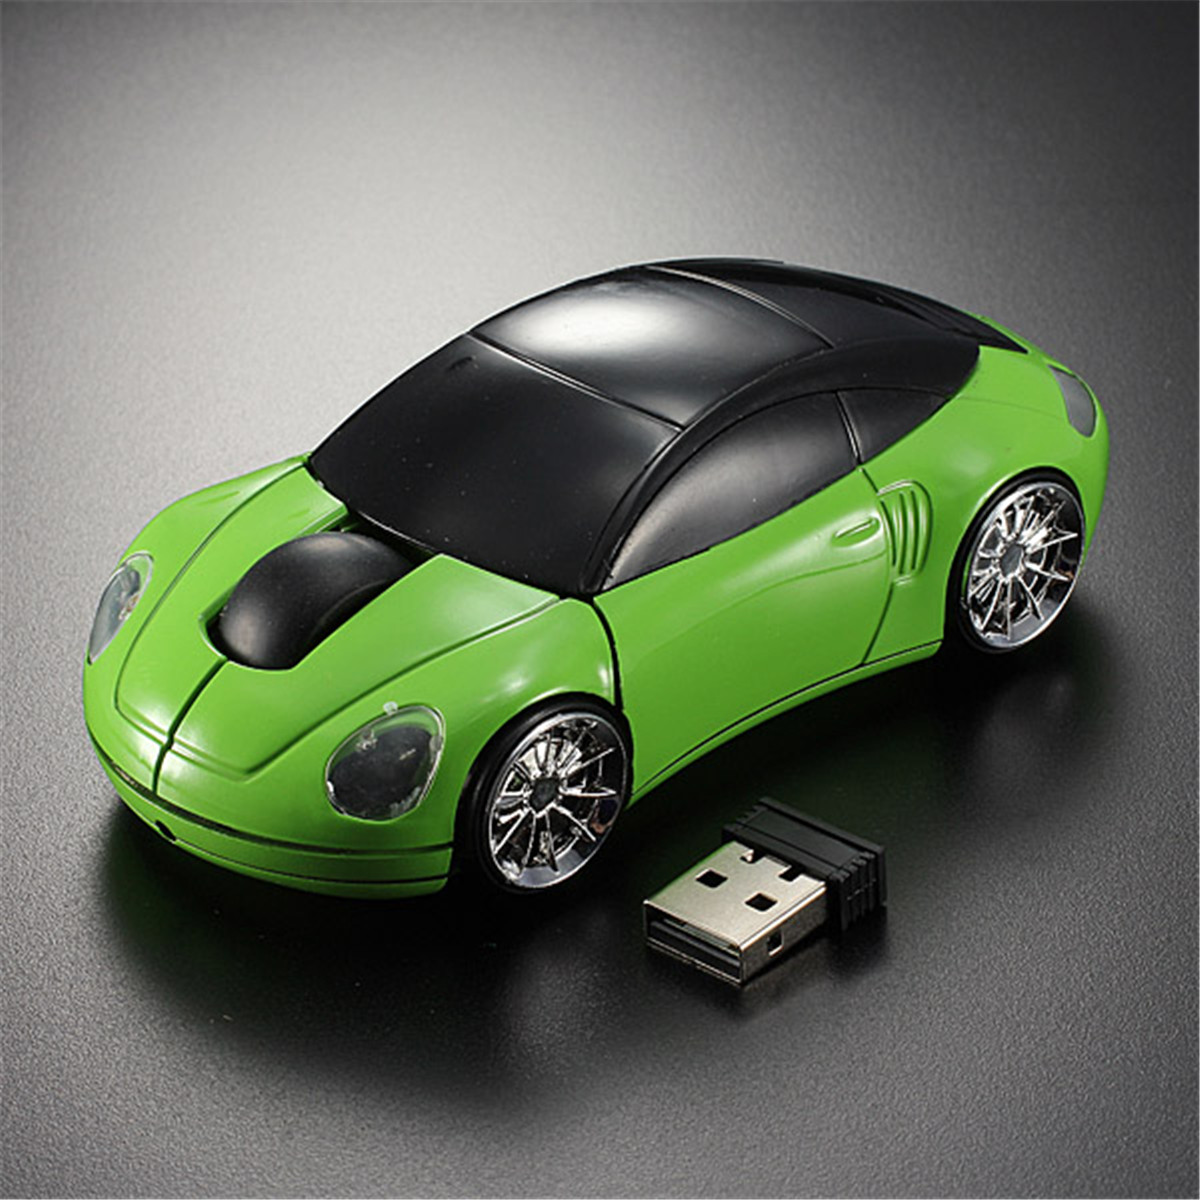 USB Wireless Optical Mouse 2.4GHz 1600DPI 3D Car Shape Mice for Laptop PC +Receiver